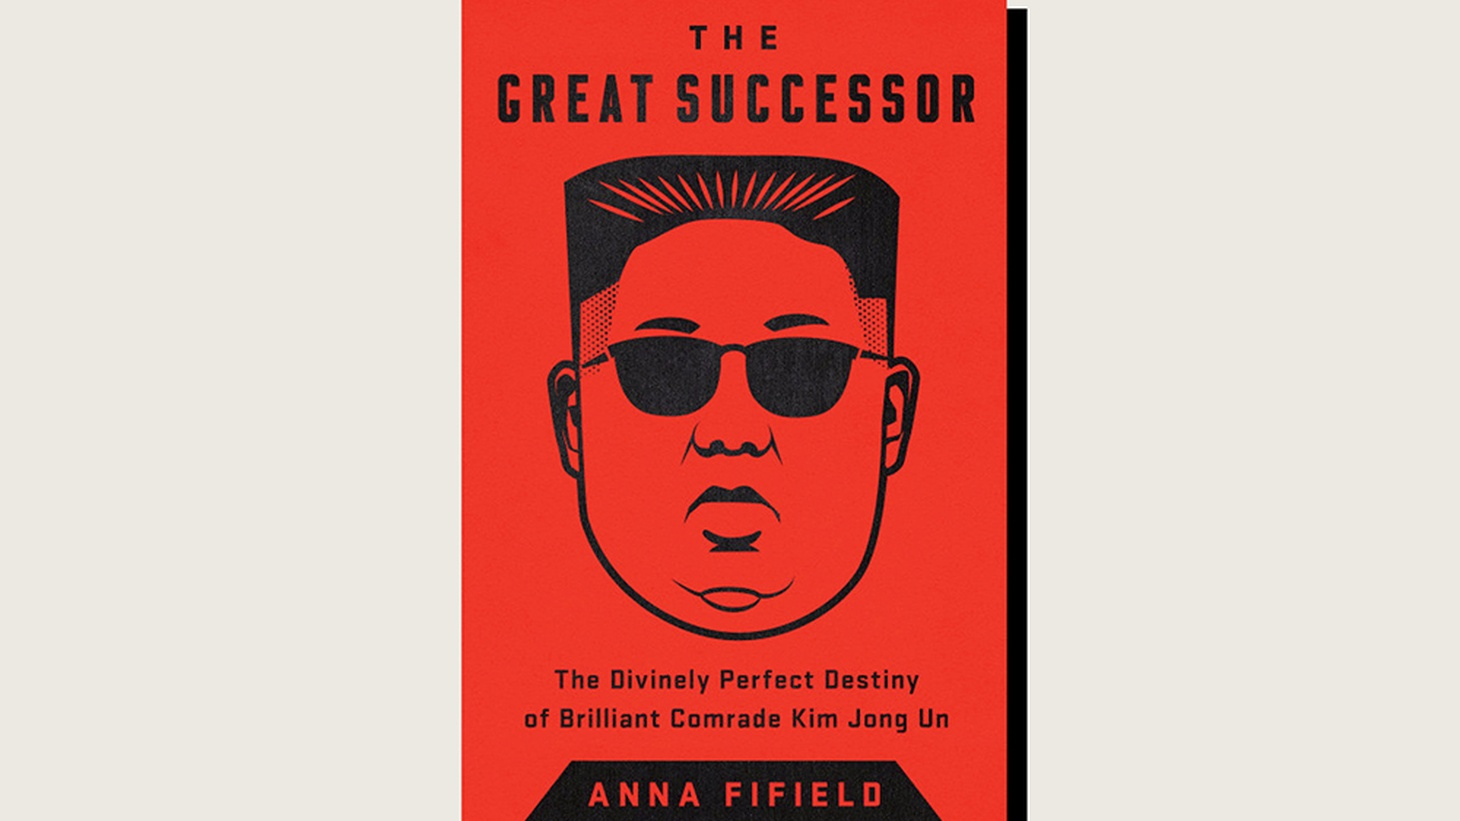 On the other side of the DMZ, President Trump shook hands with North Korea's Kim Jong Un. A new book reveals Kim's early life in a bubble and how his brutal dictatorship is covered up with a cult of personality.